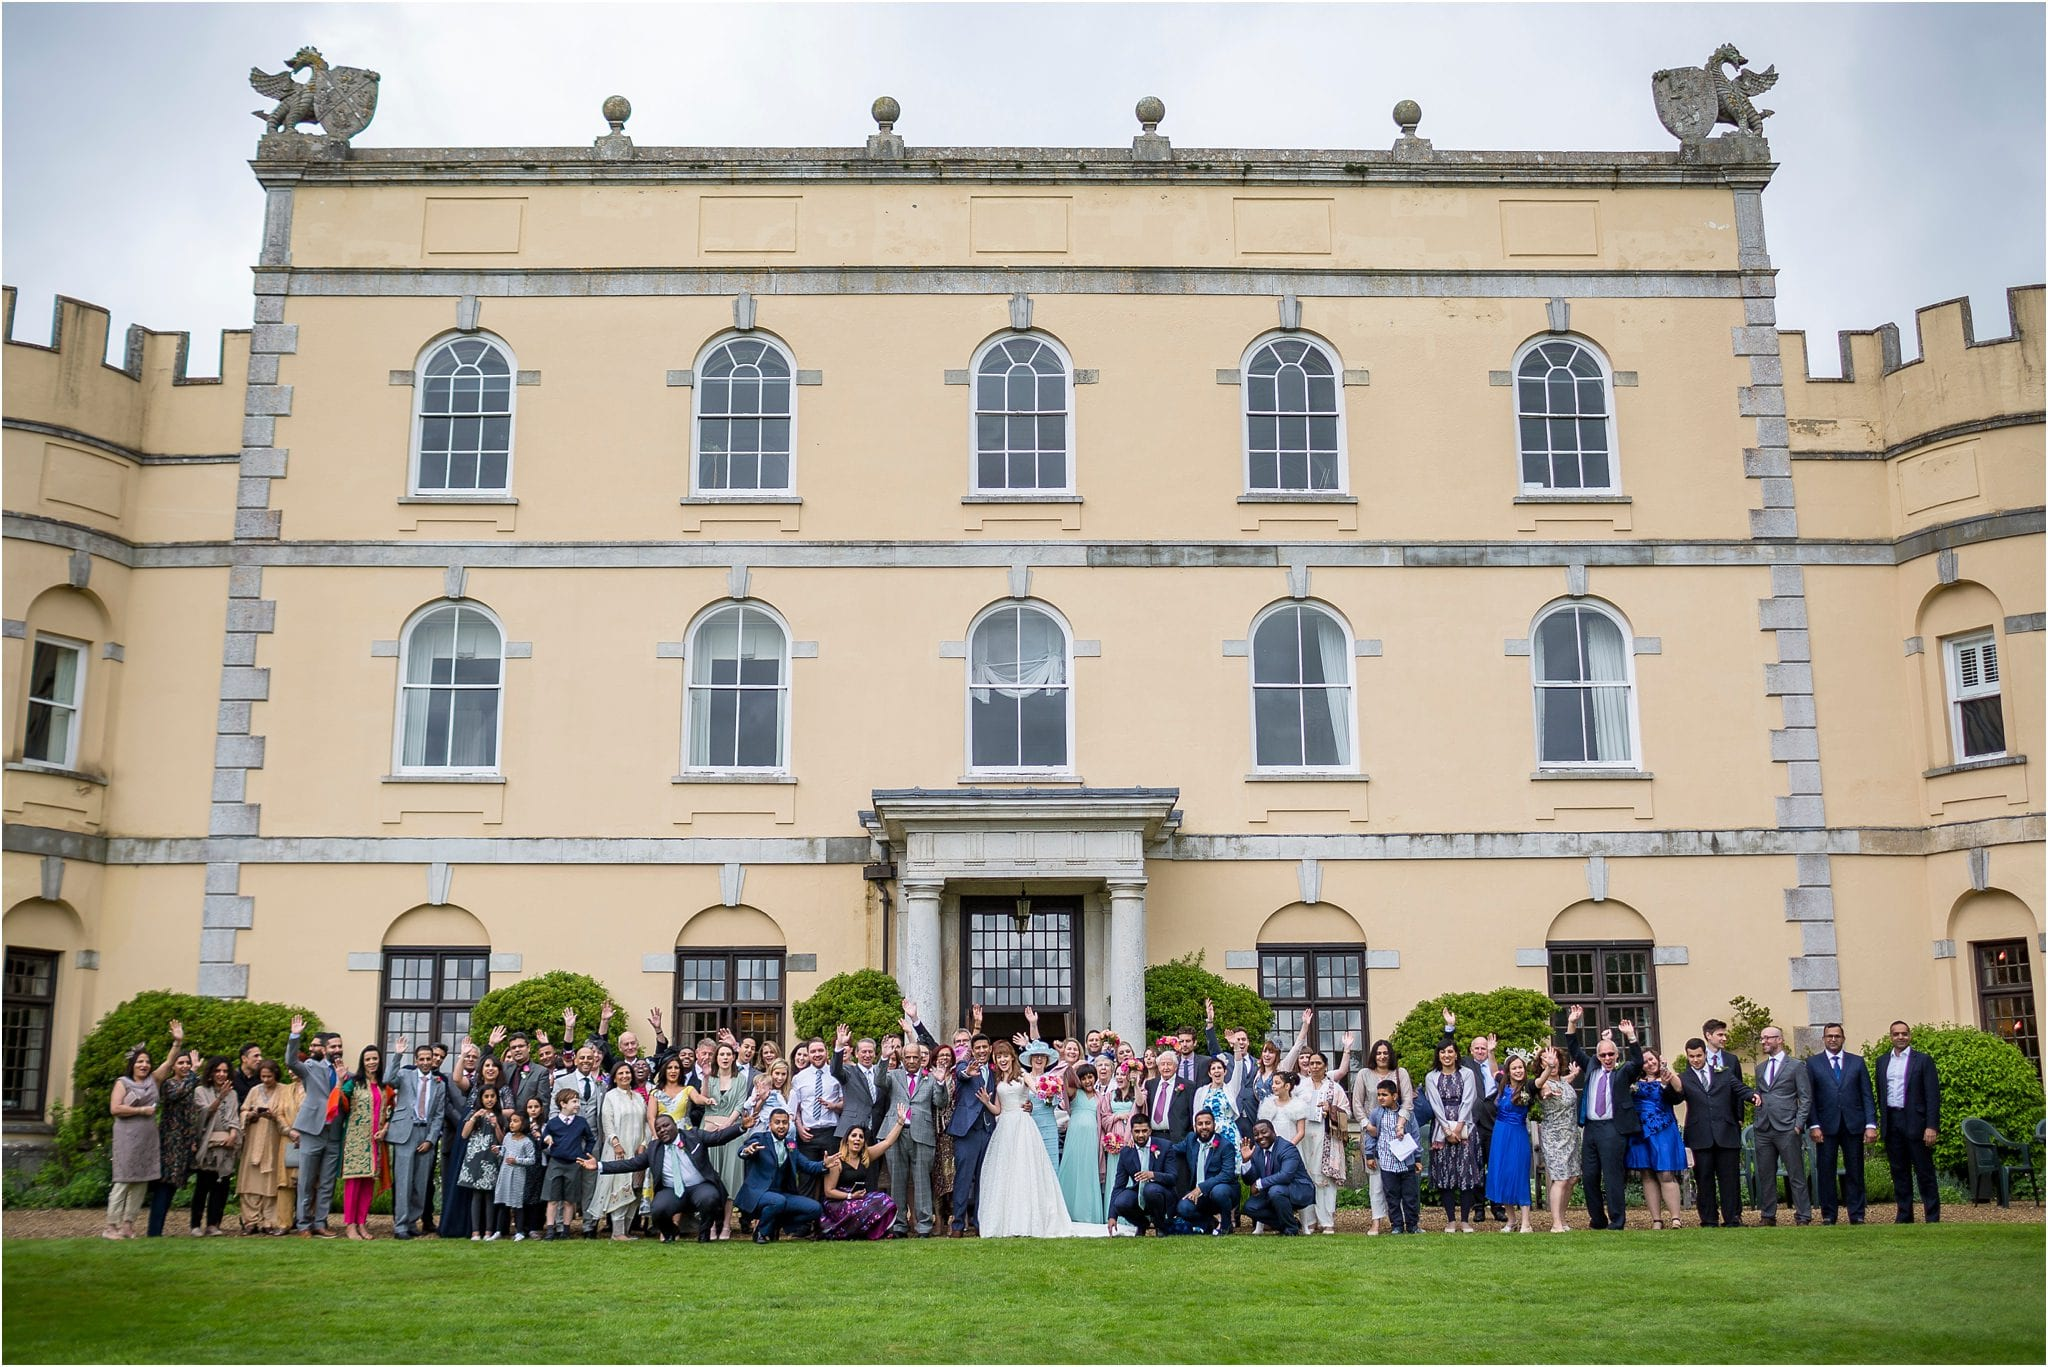 Guests in front of a grand wedding venue. Image by S2 Images, Hampden House Wedding Photographer